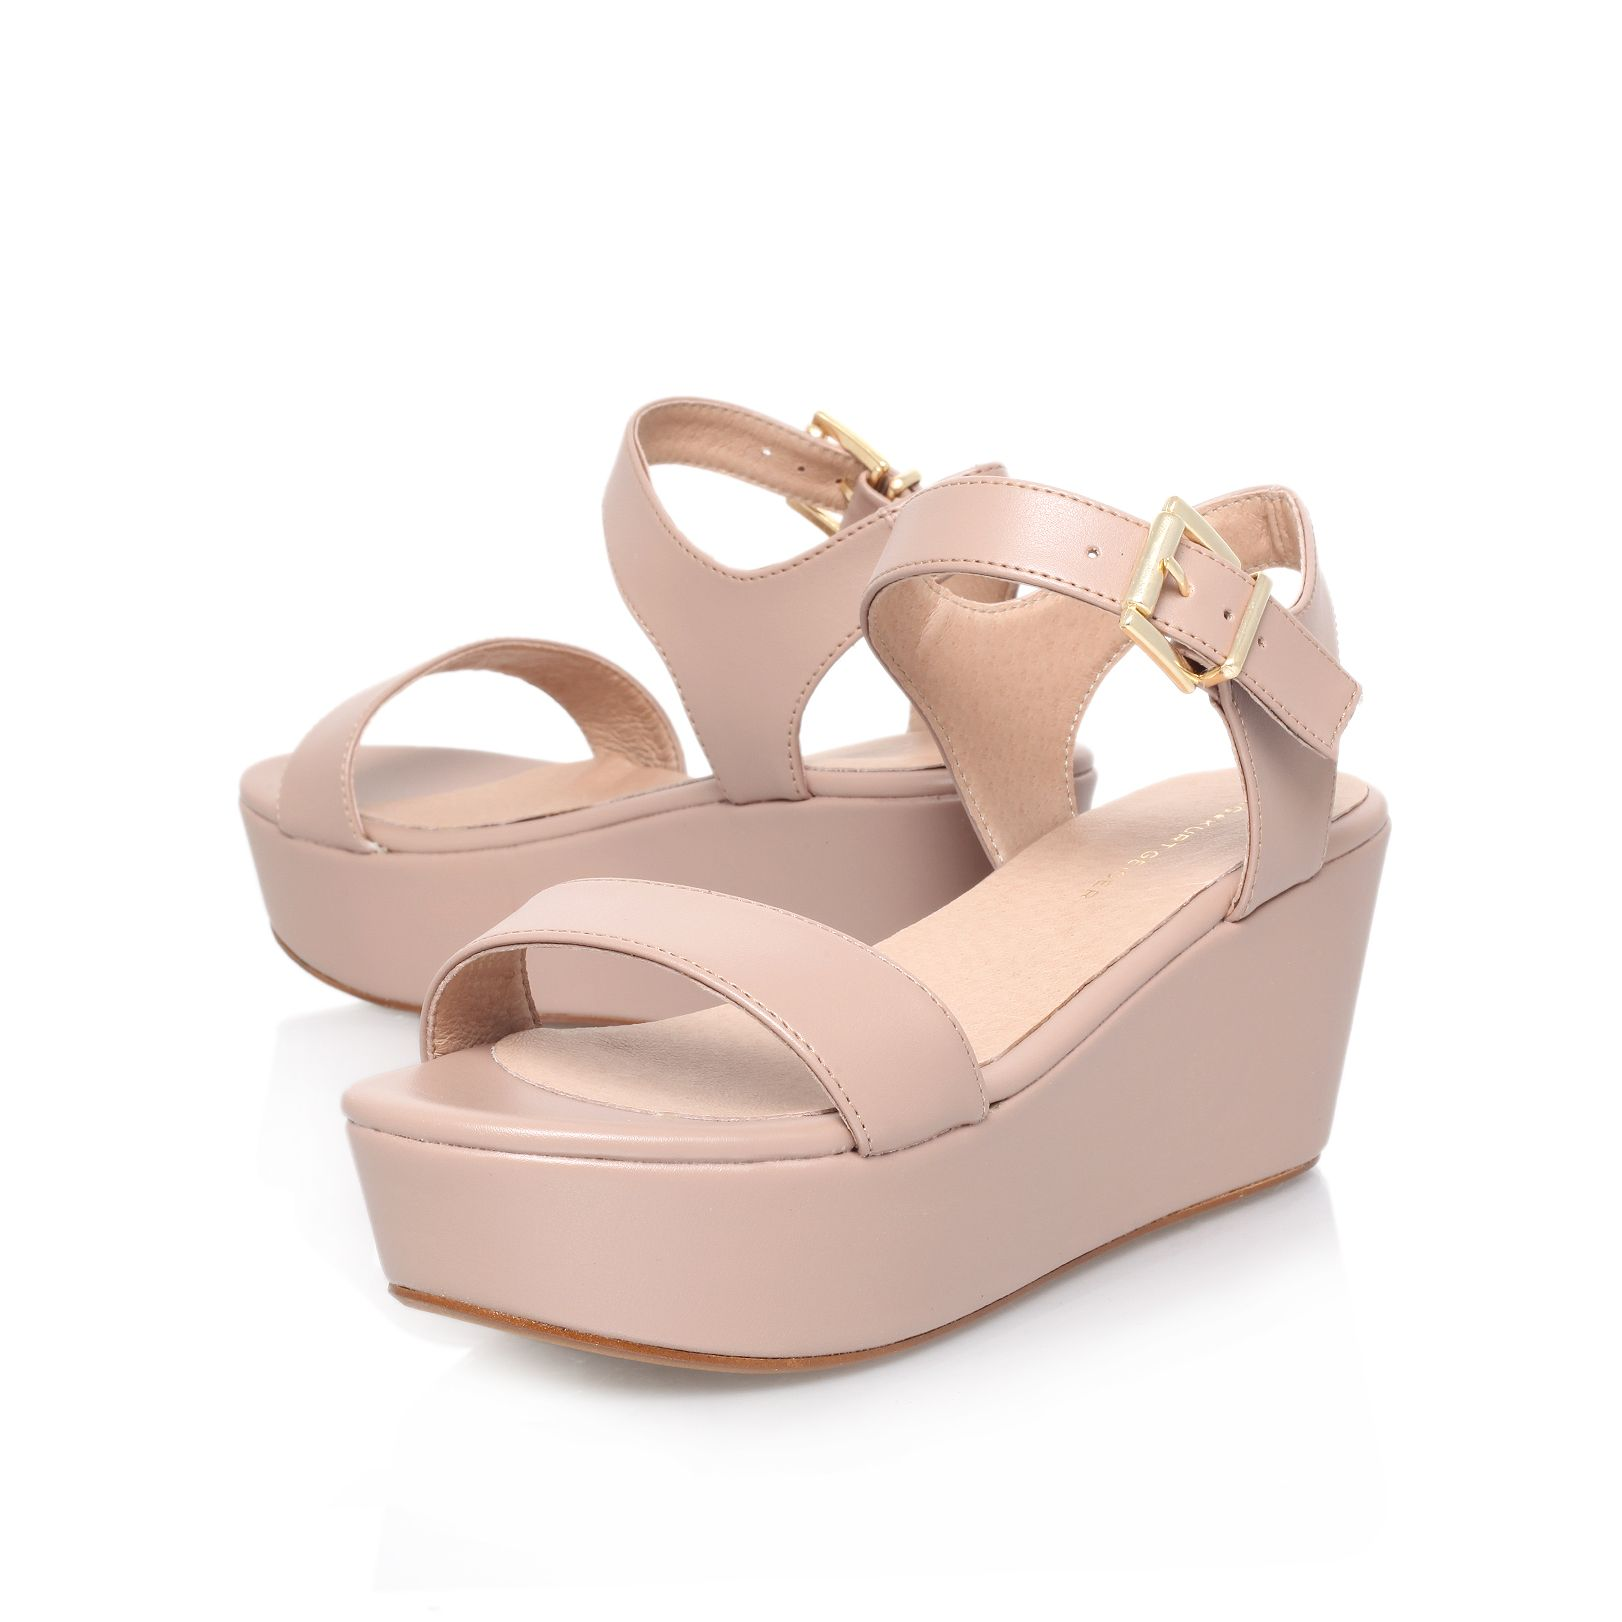 Madrid wedge sandals